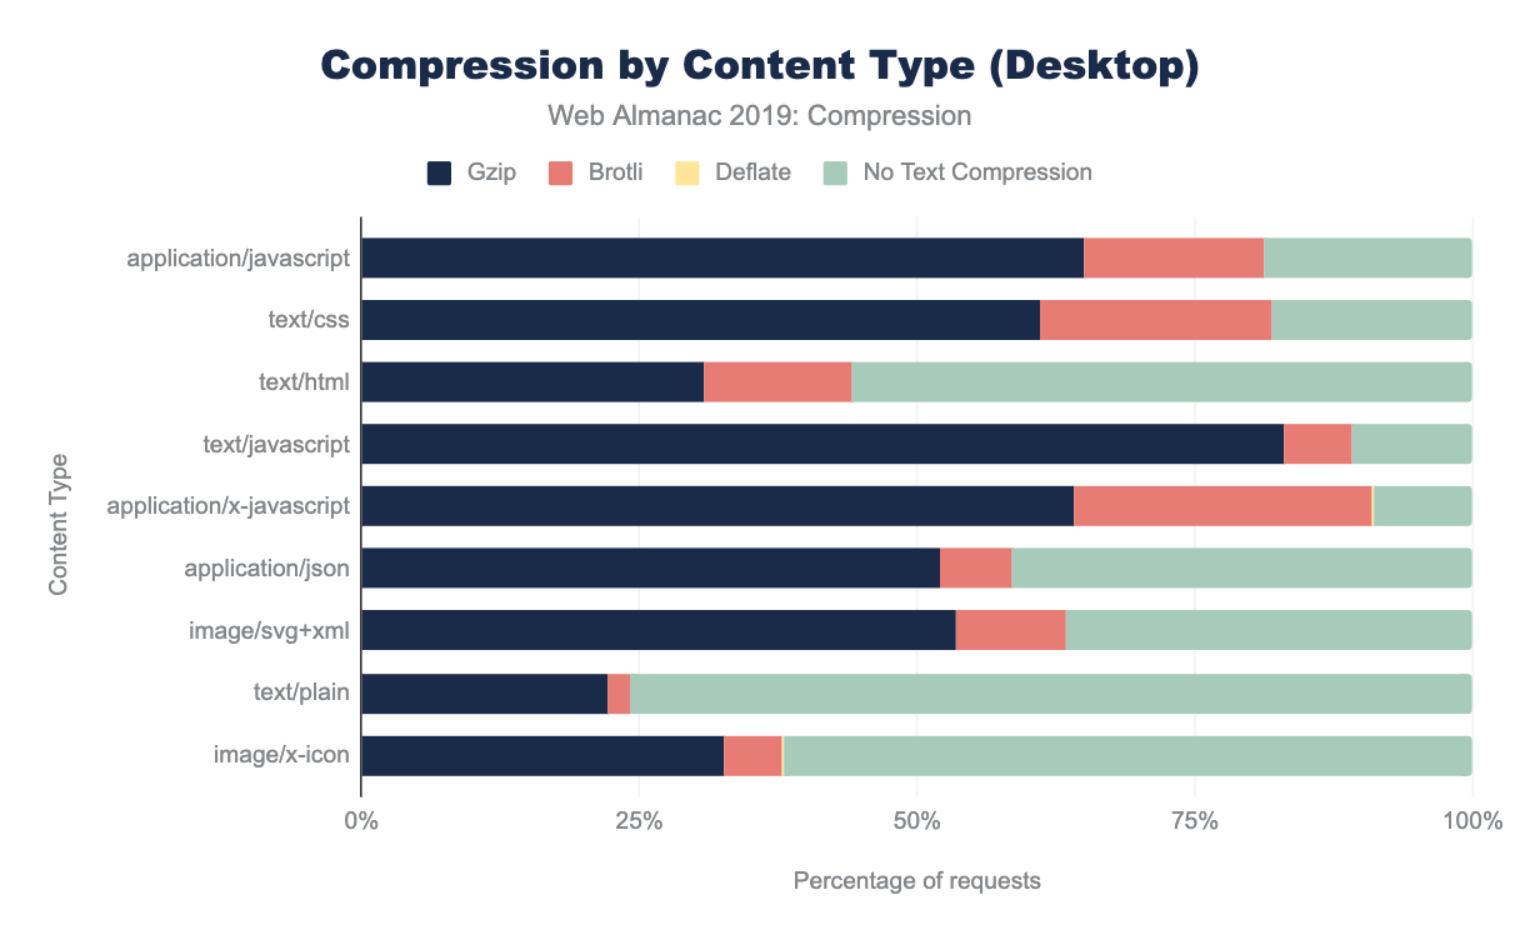 Compression by content type as a percent for desktop.